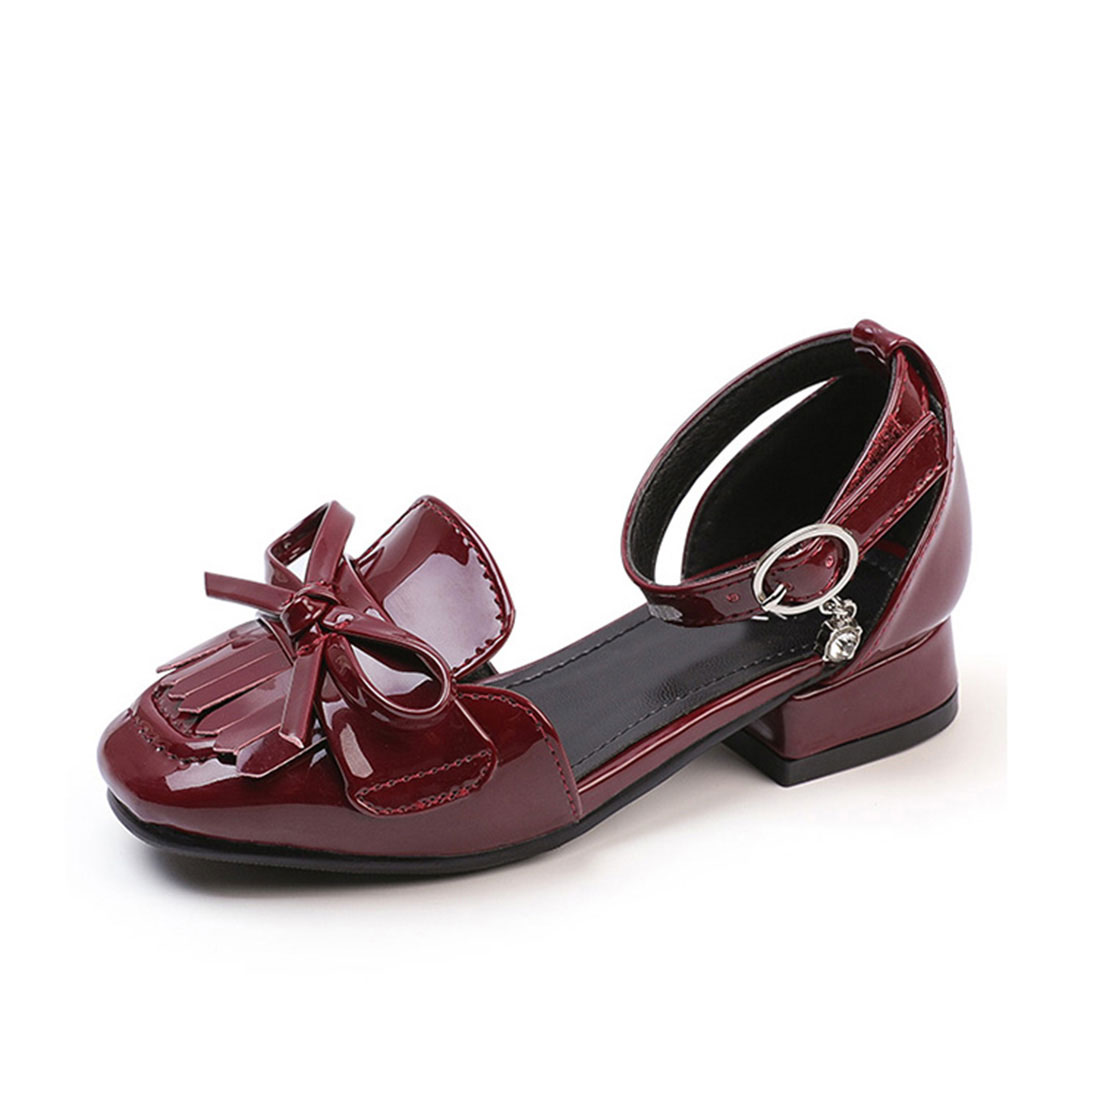 Patent leather dark red heels summer dress bow and tassels kids dress shoes